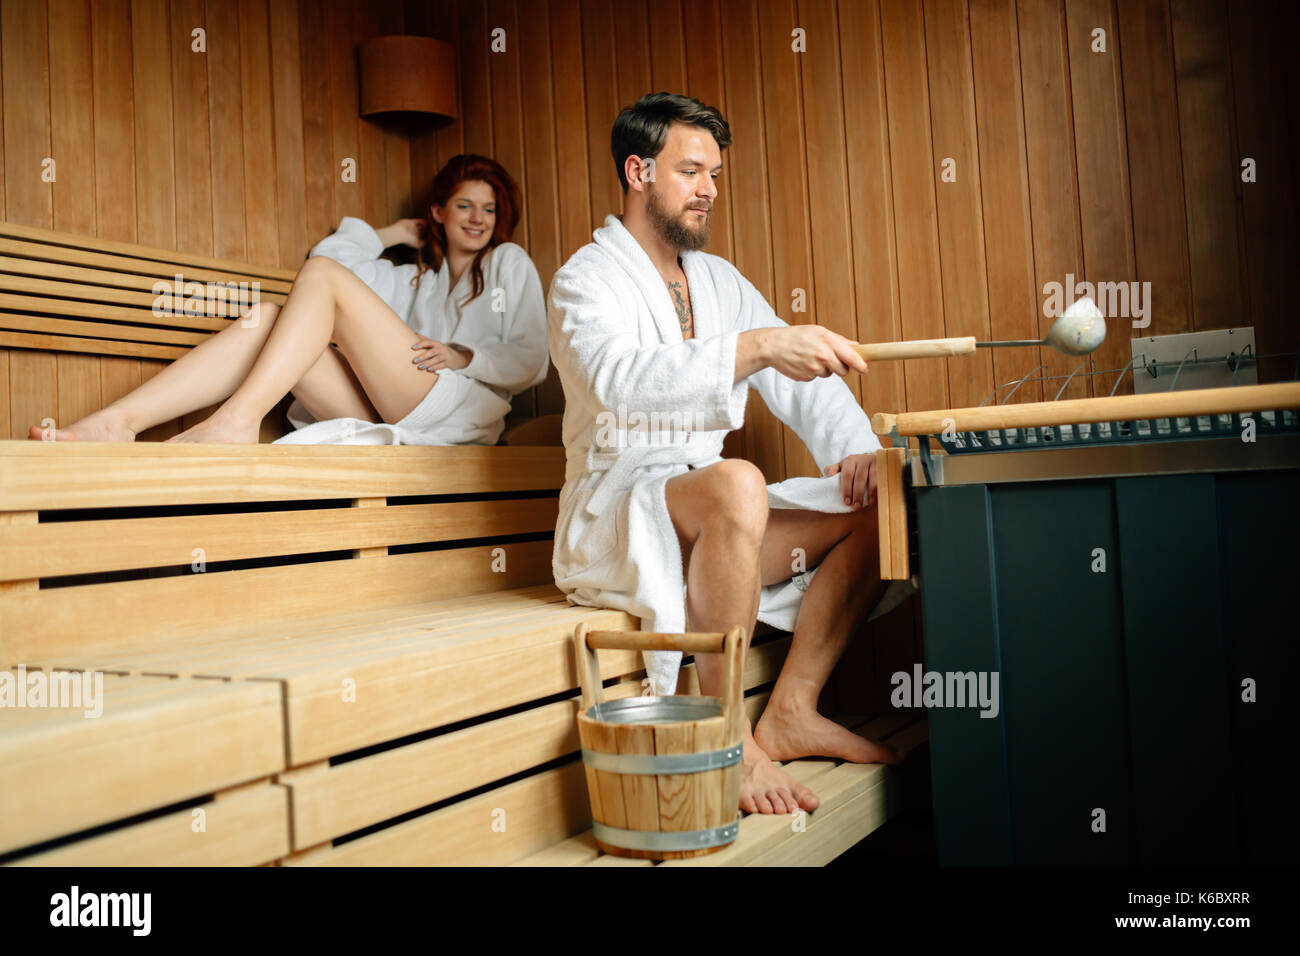 hotel therme stock photos hotel therme stock images alamy. Black Bedroom Furniture Sets. Home Design Ideas